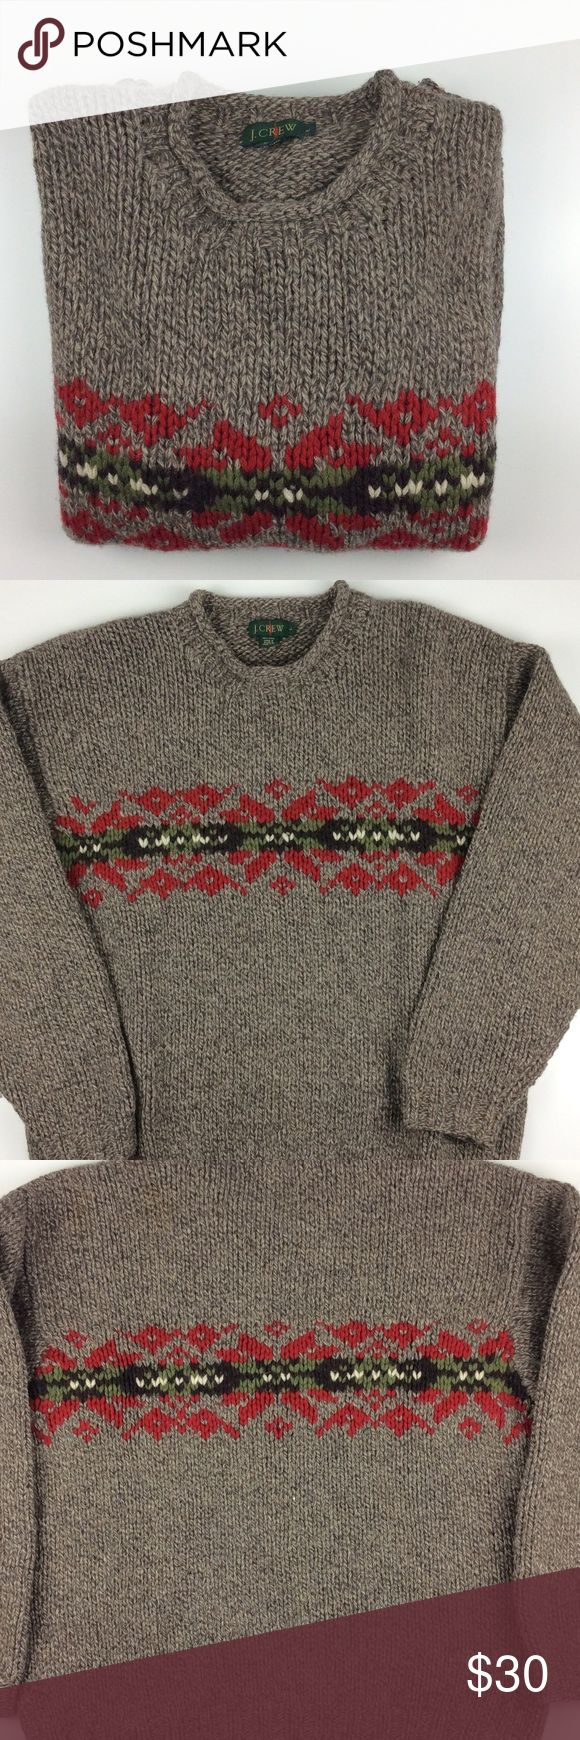 Mens Wool Sweater Like new and Perfect for the cold weather. You'll be warm and stylish this holiday. This can be a Mens or Women's sweater. See pictures for measurements J. Crew Sweaters Crewneck